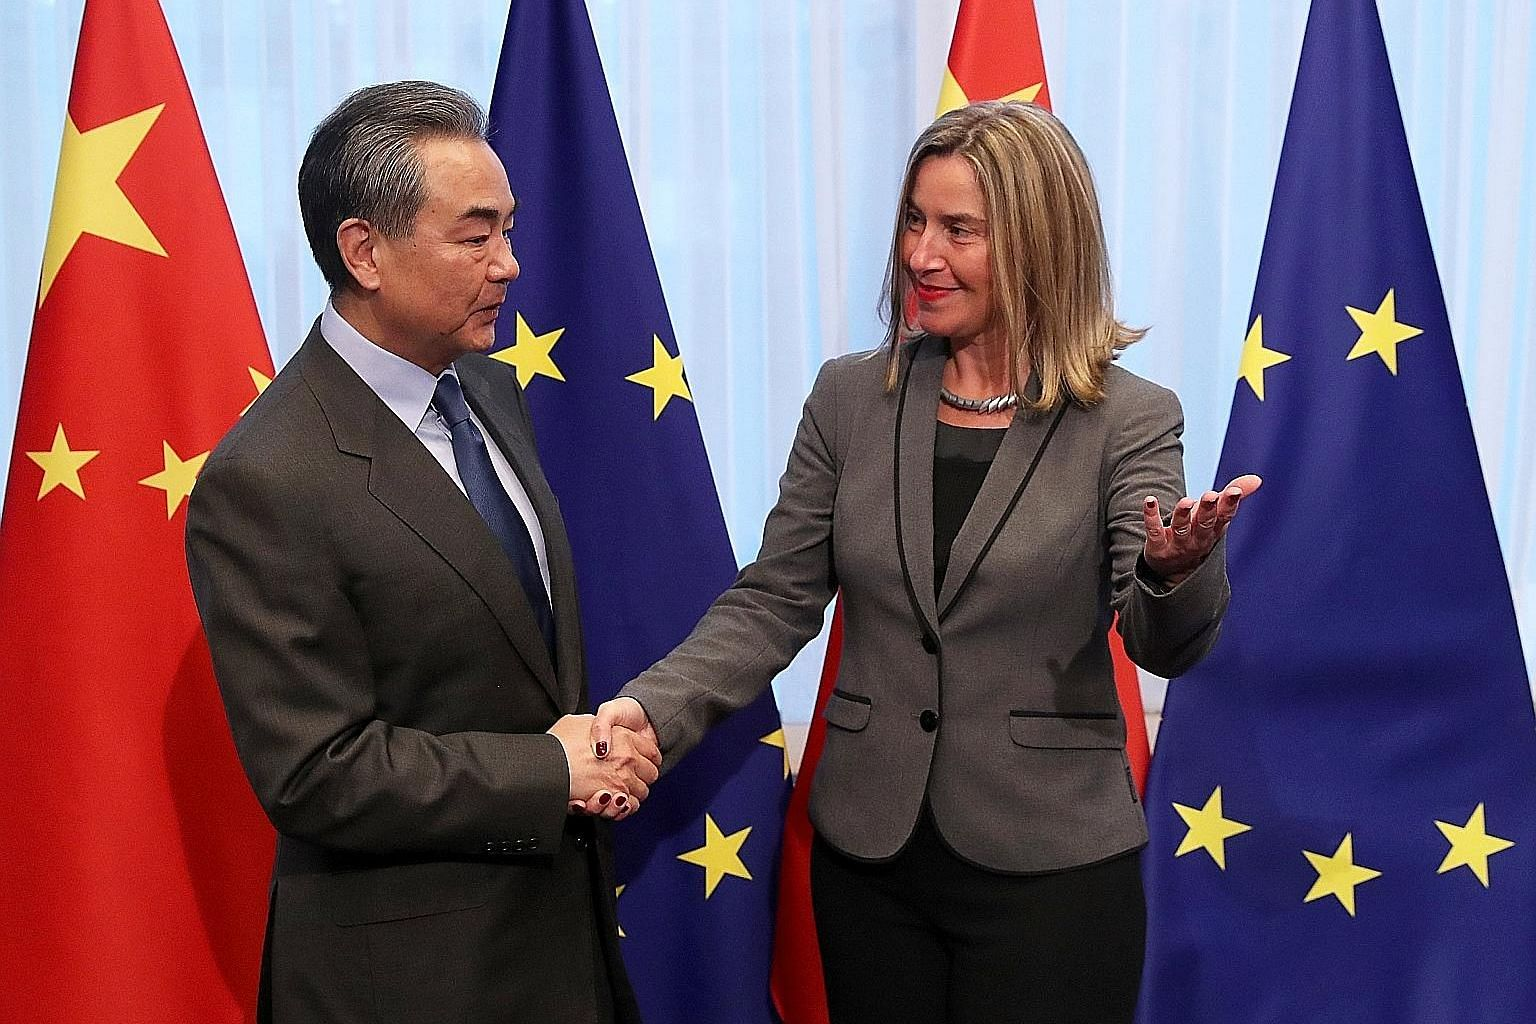 Chinese Foreign Minister Wang Yi being welcomed by Ms Federica Mogherini, the European Union's foreign policy chief, ahead of a meeting in Brussels on Monday. Mr Wang said earlier this month that relations between China and Europe were in good shape,